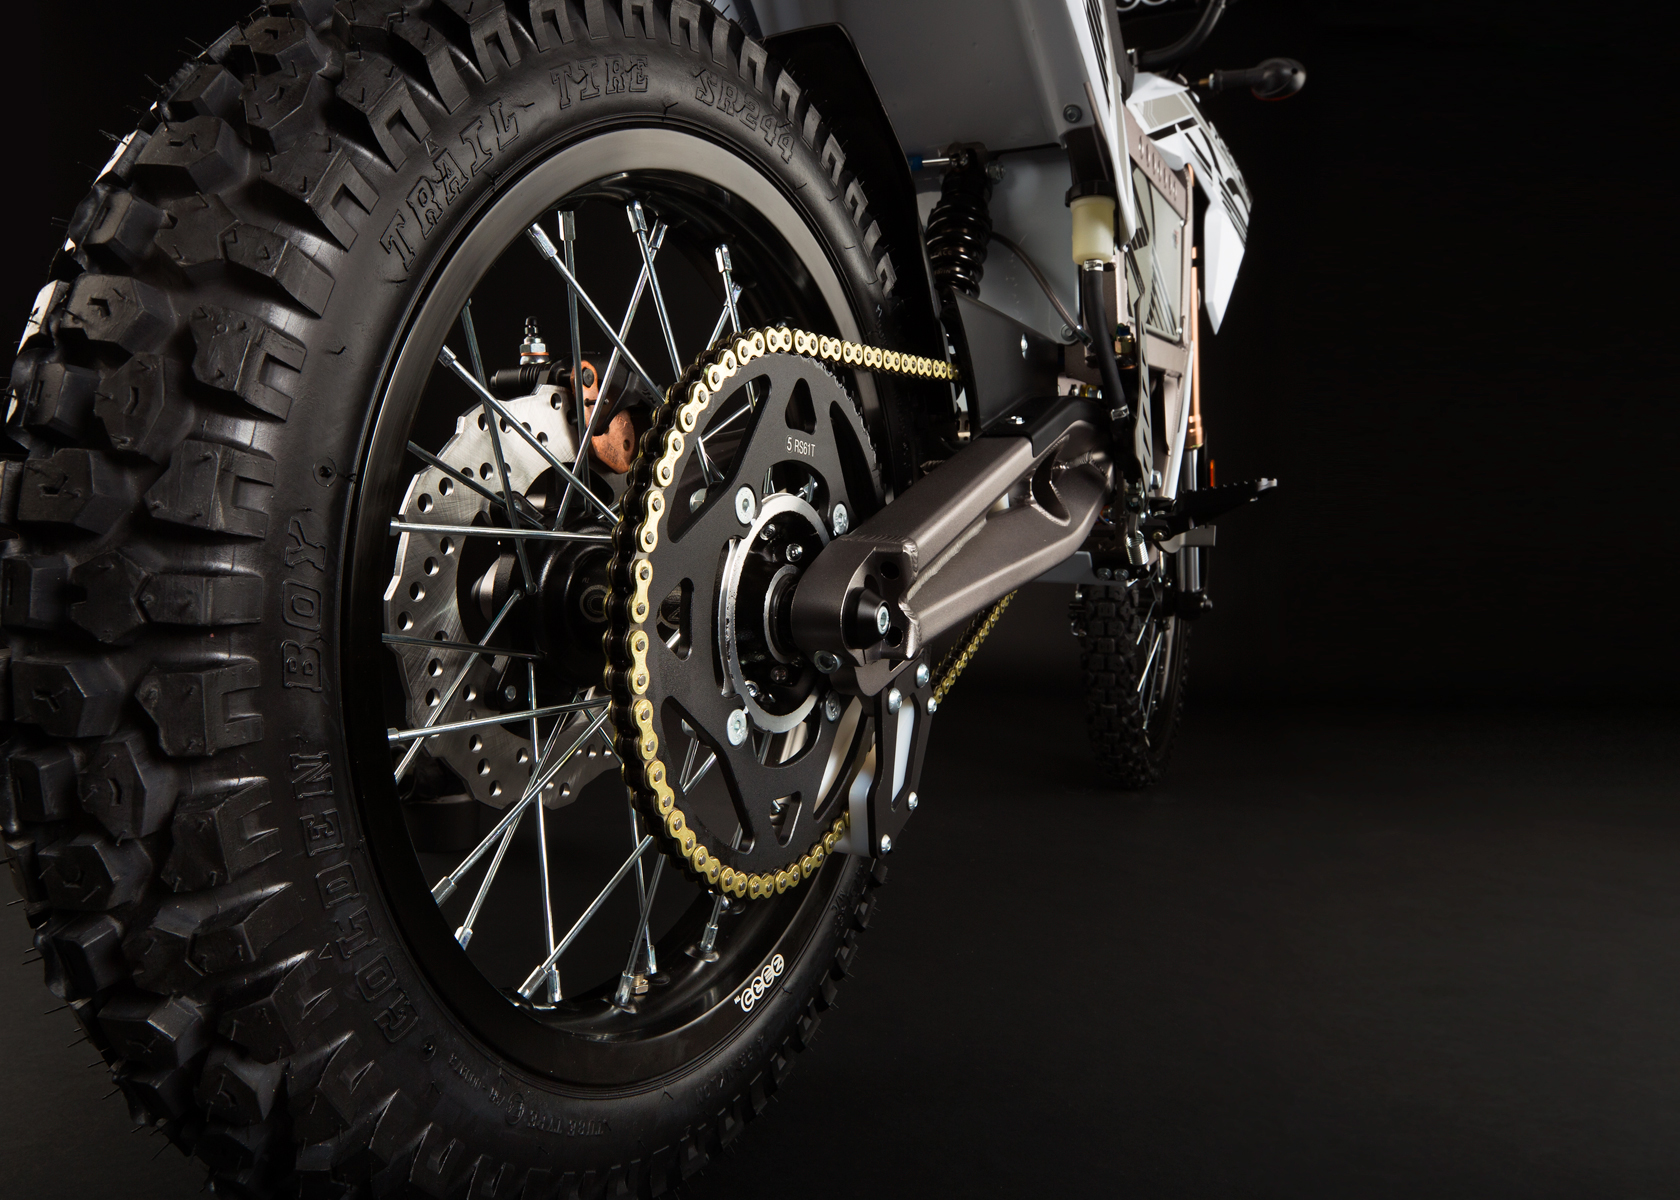 2012 Zero X Electric Motorcycle: Back Tire